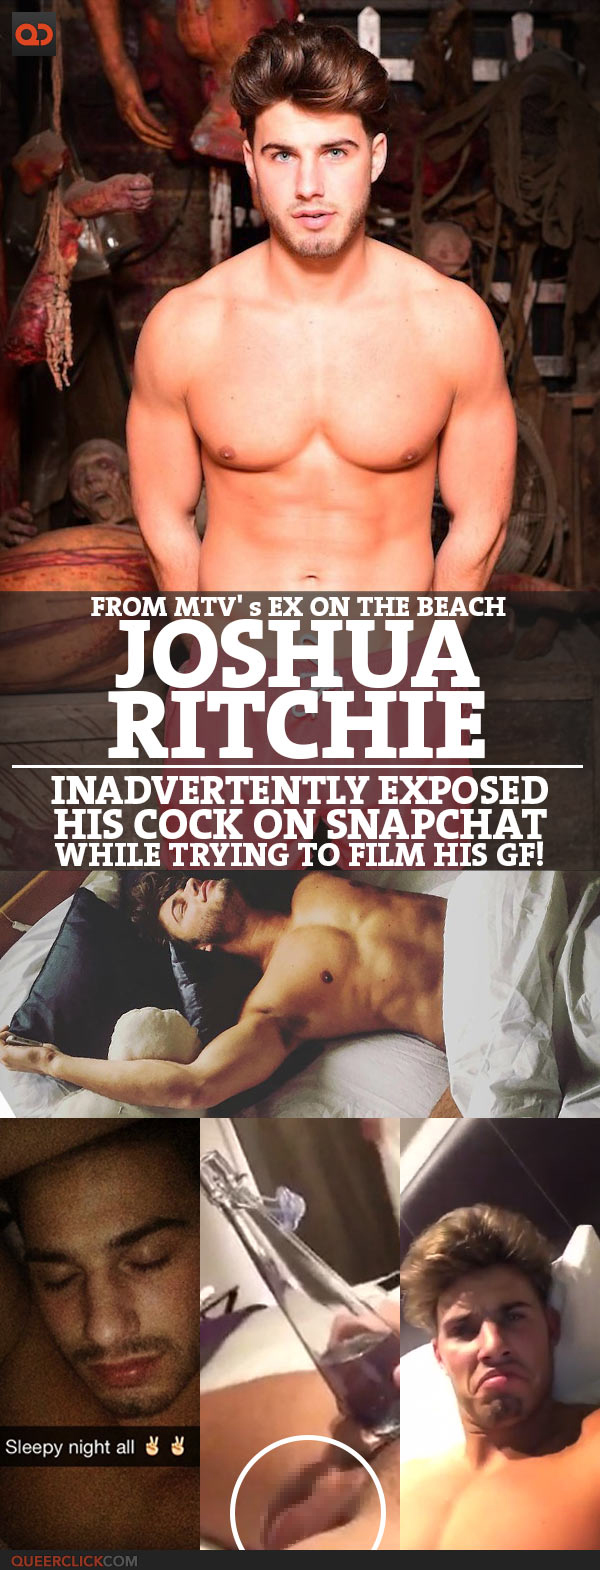 Joshua Ritchie, From TV Show Ex On The Beach, Inadvertently Exposed His Cock On Snapchat While Trying To Film His GF!